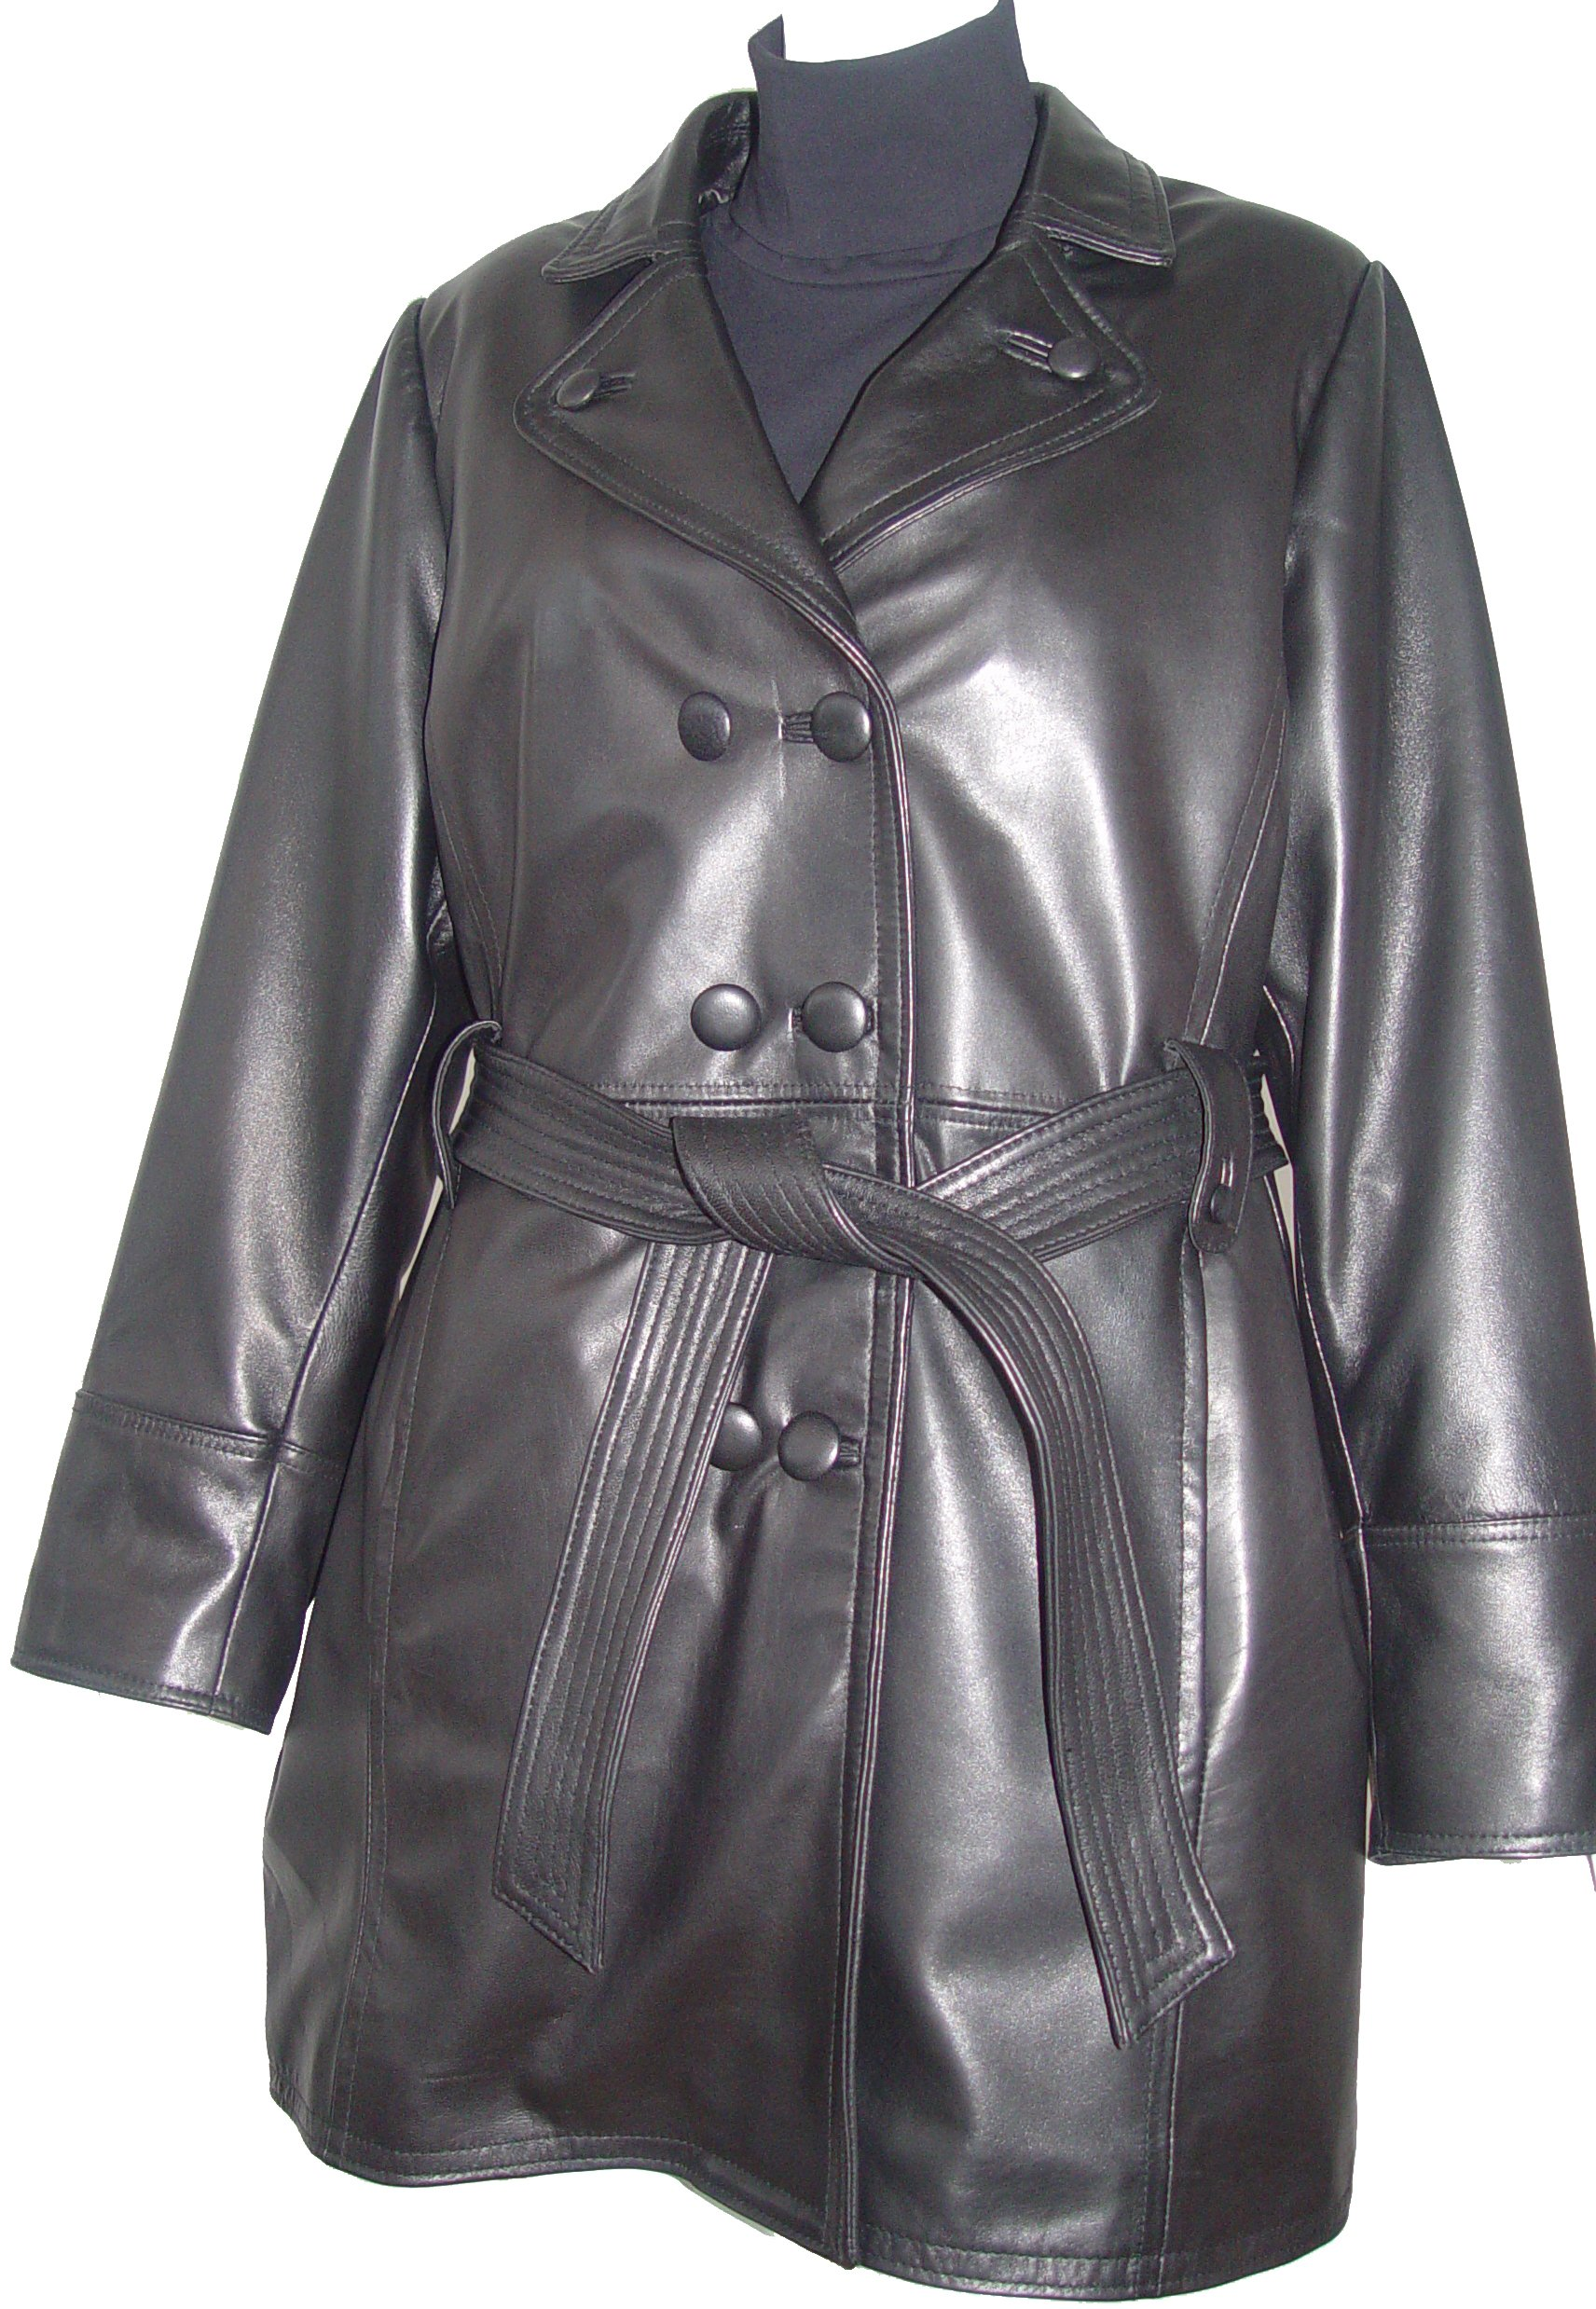 Paccilo 5006 Classic Leather Trench Coats Womens Business Clothing Soft Lamb by Paccilo (Image #1)